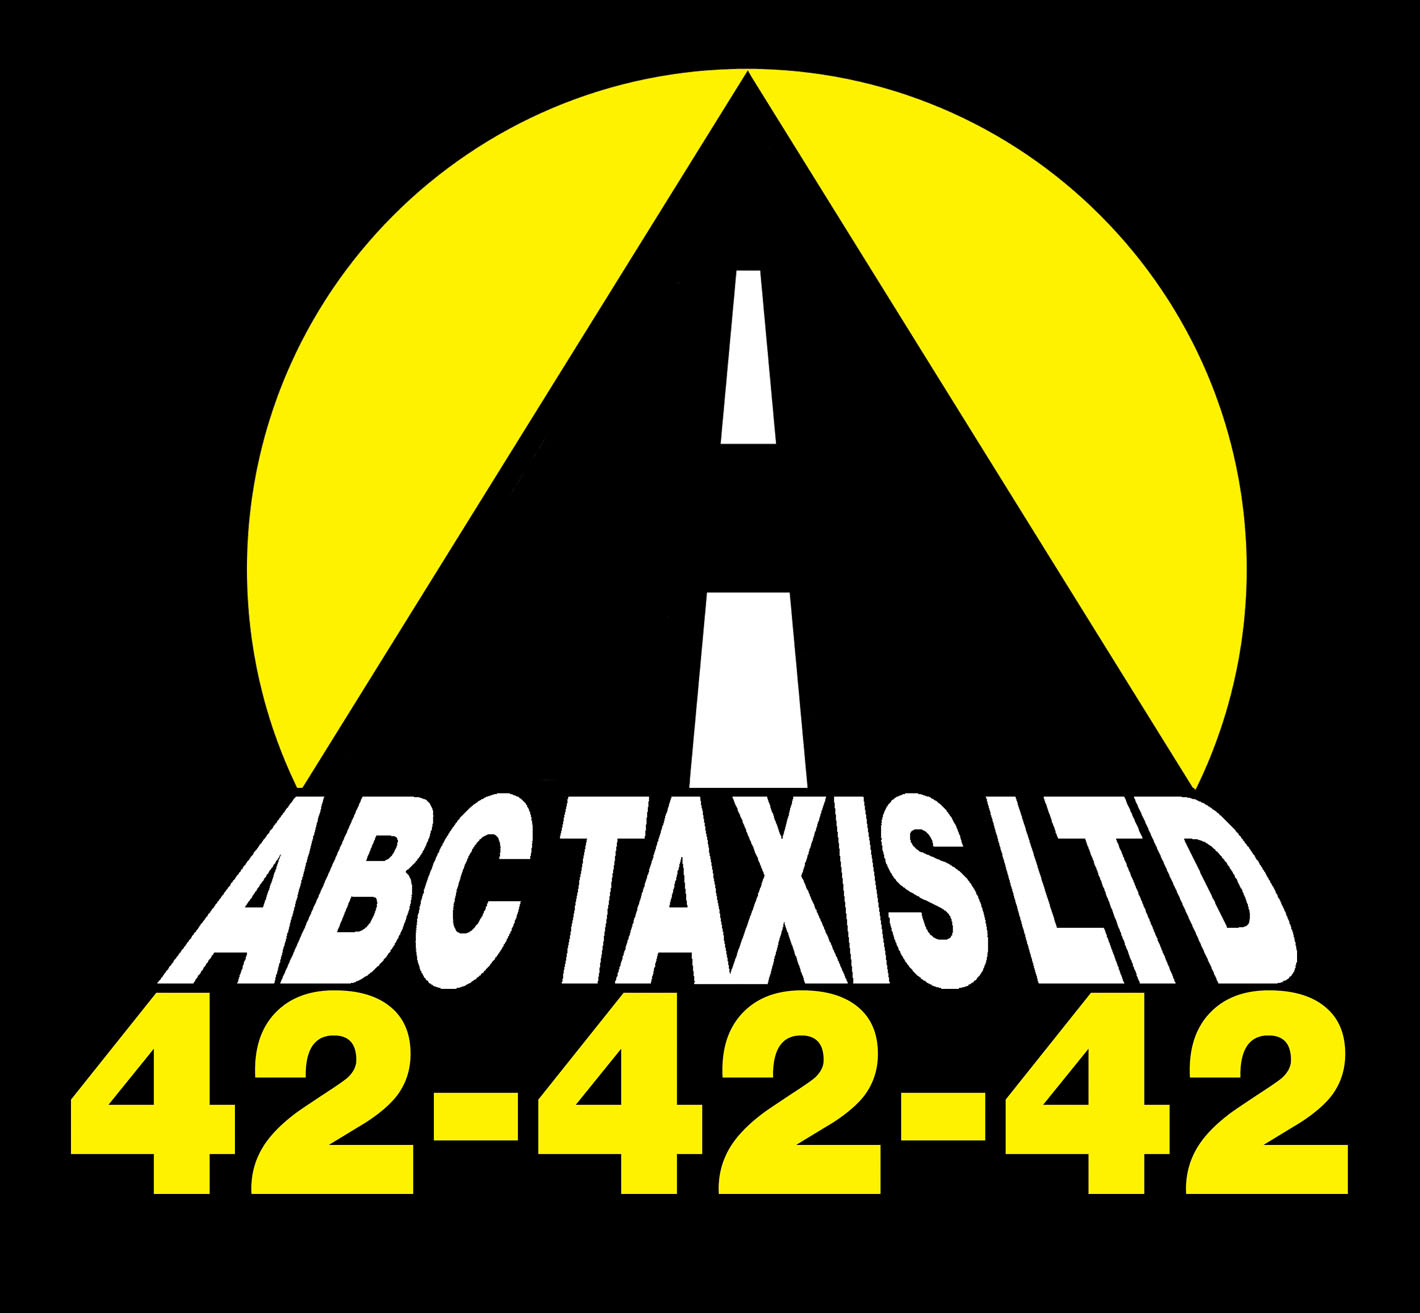 TaxiCallLogo